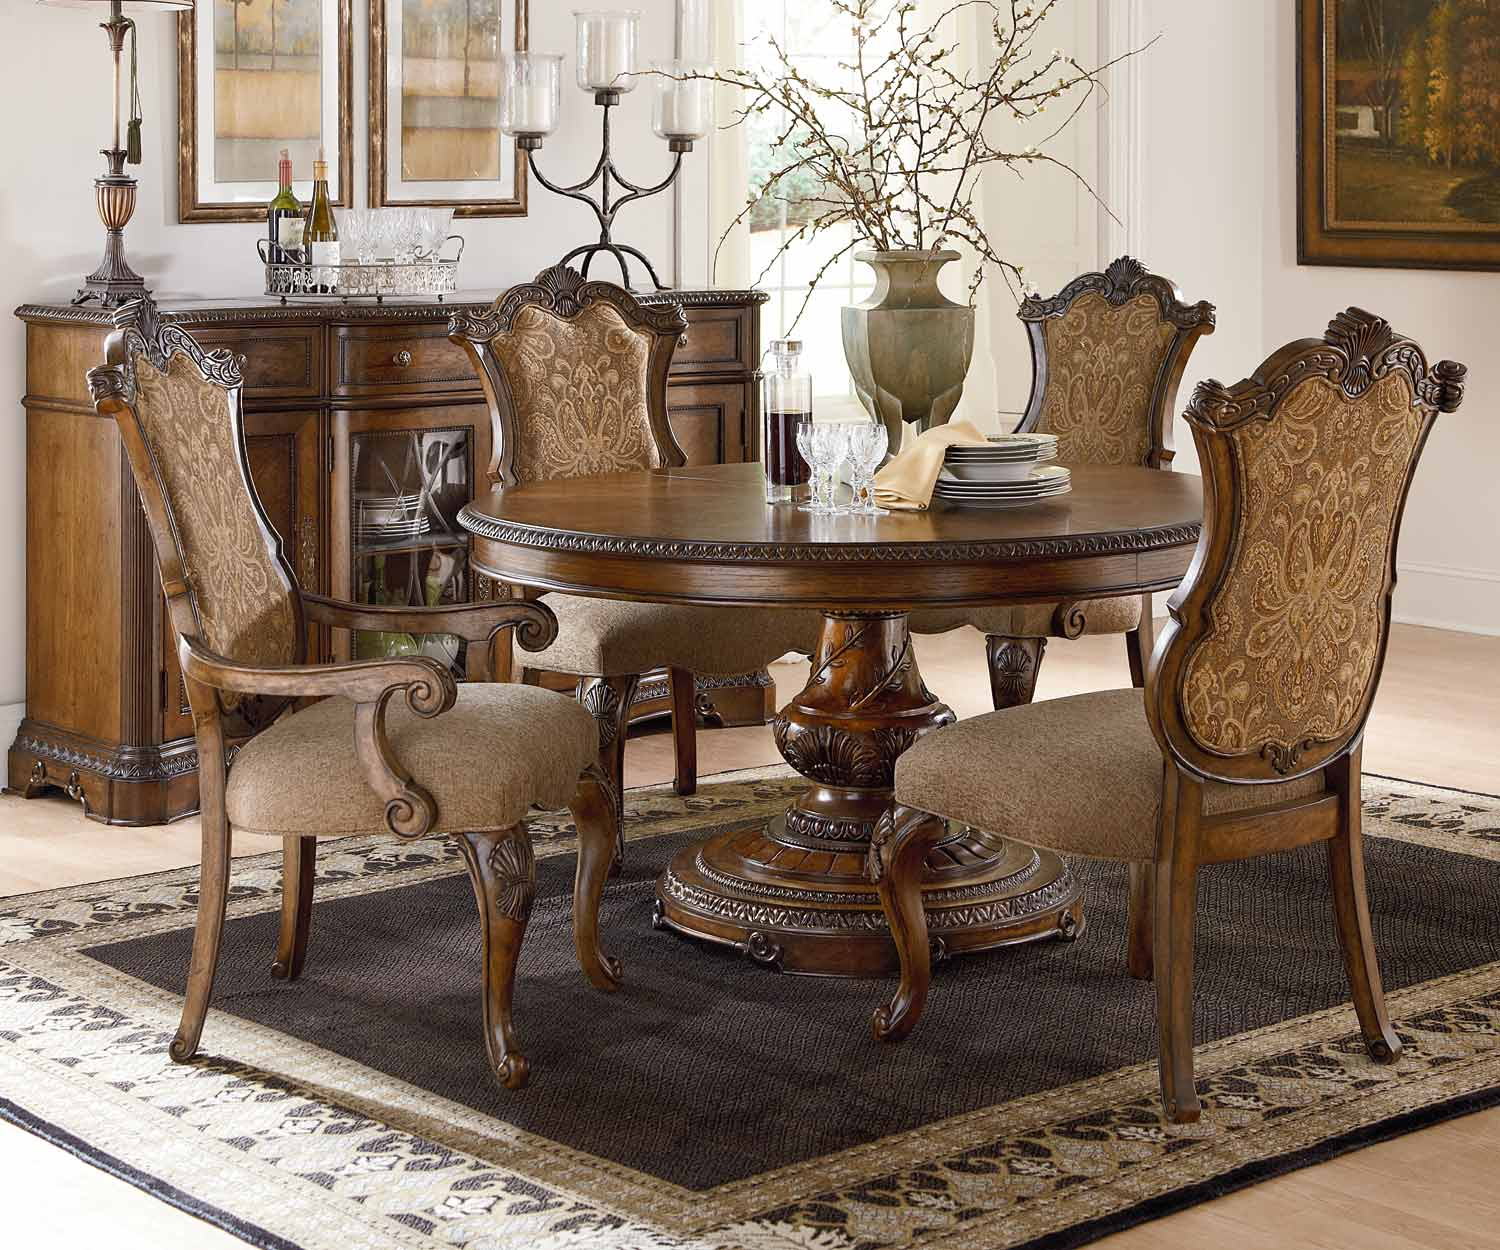 Legacy Classic Pemberleigh Round/Oval Dining Set with Upholstered Chair - Brandy/Burnished Edges